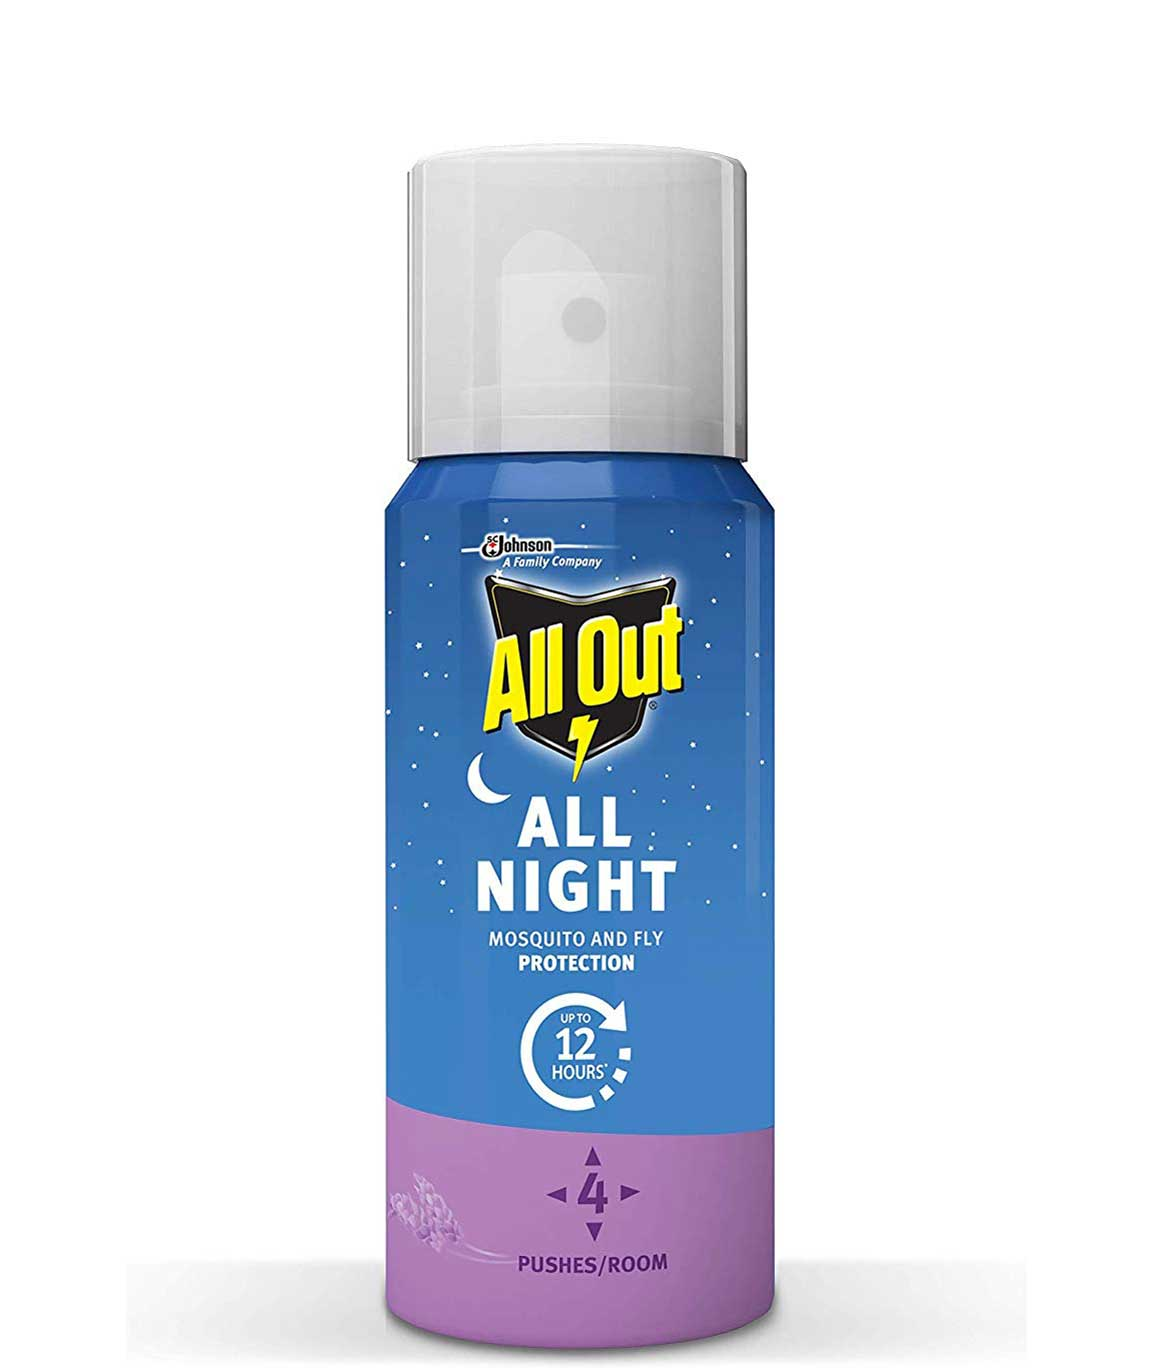 All Out All Night Mosquito and Fly Spray, 15ml